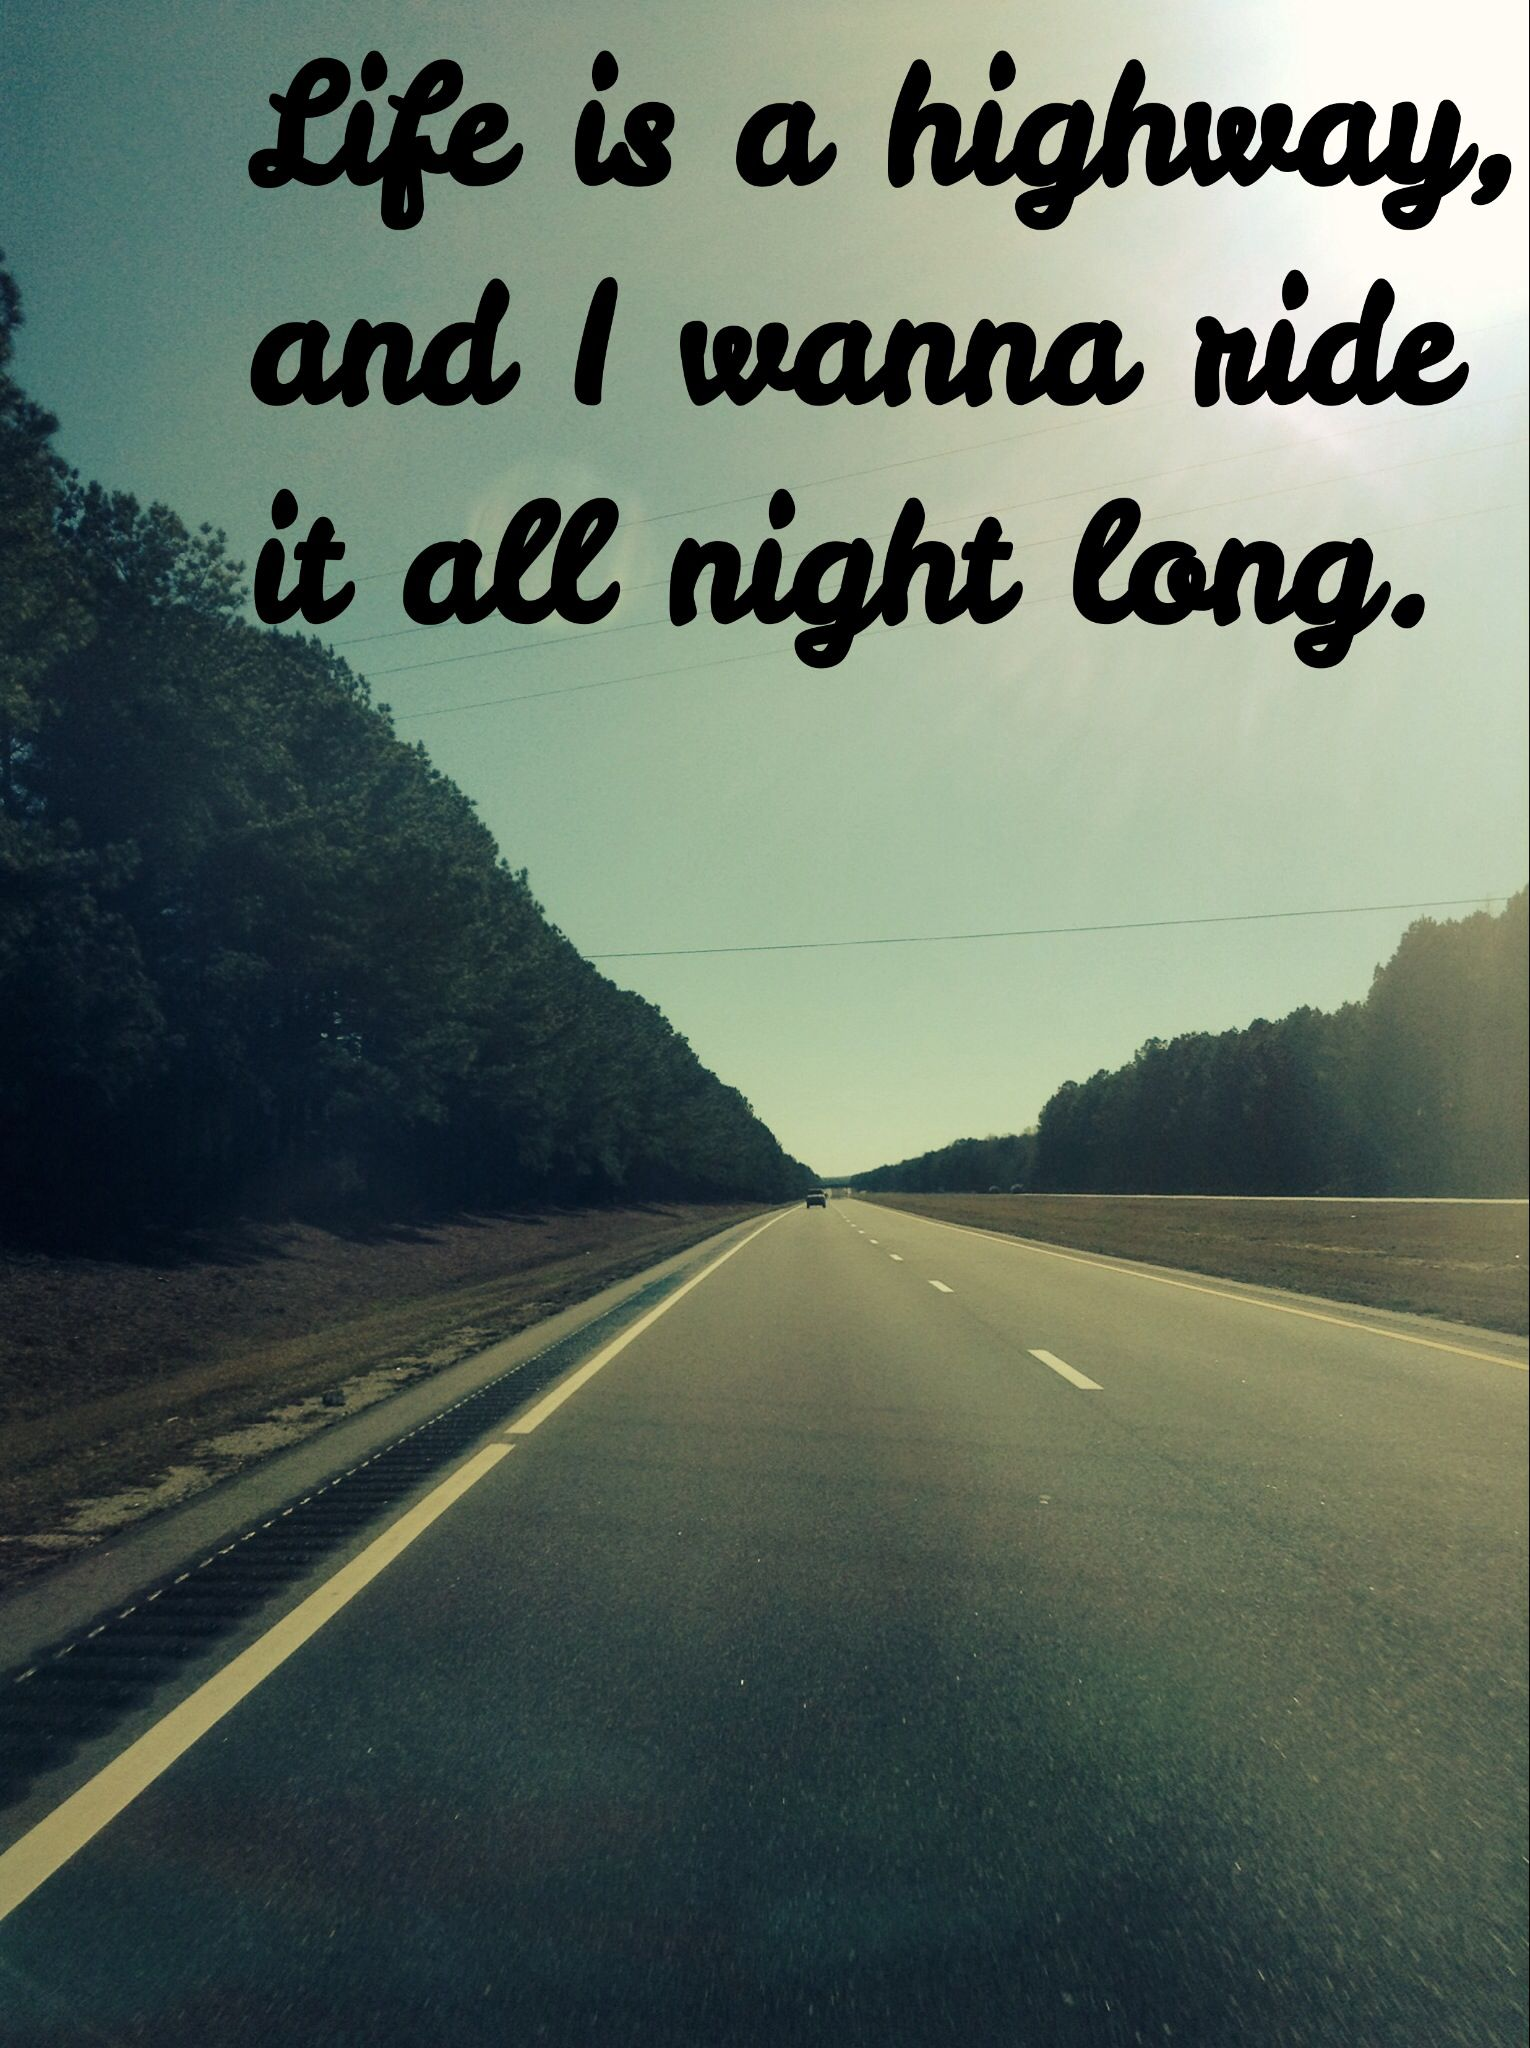 Uncategorized Life Is A Highway Lyrics life is a highway and i wanna ride it all night long im weak long